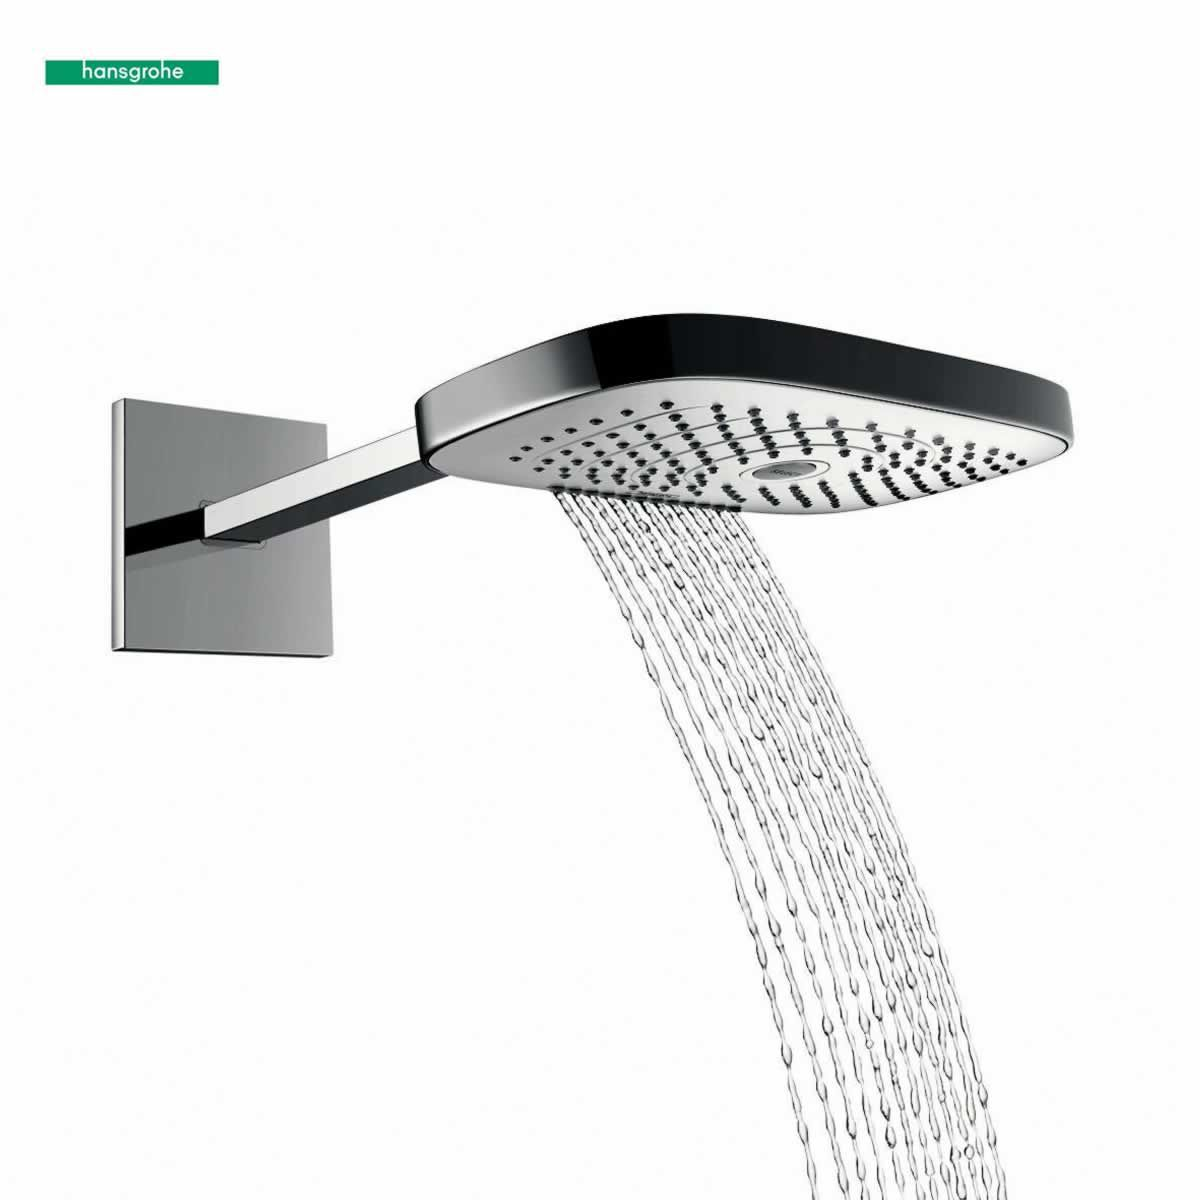 hansgrohe raindance select e 300 3jet overhead shower head. Black Bedroom Furniture Sets. Home Design Ideas